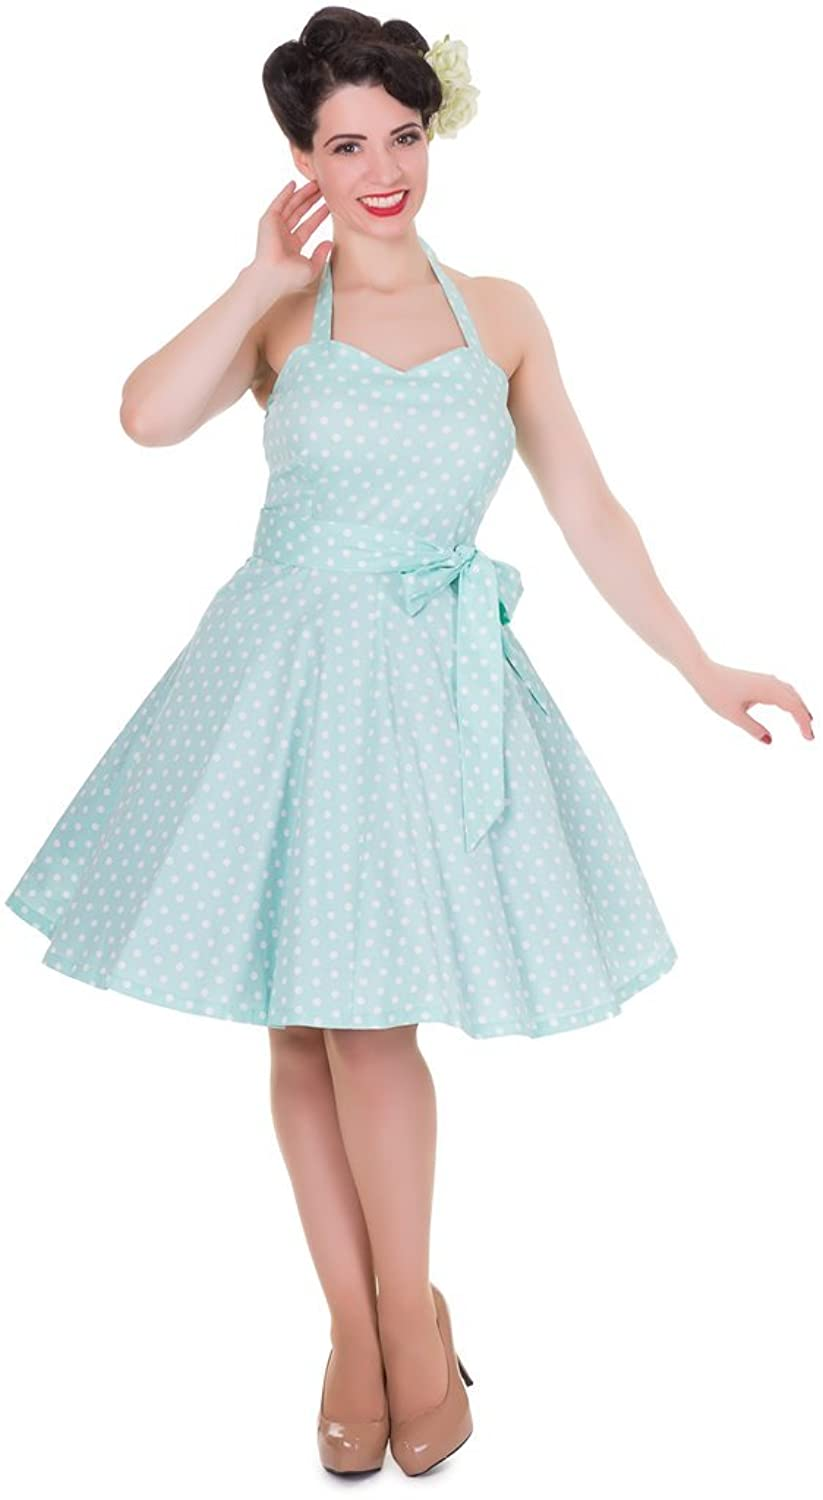 Dolly and Dotty™ 'Penny' Polka Dots Tupfen Neckholder Vintage Swing Kleid